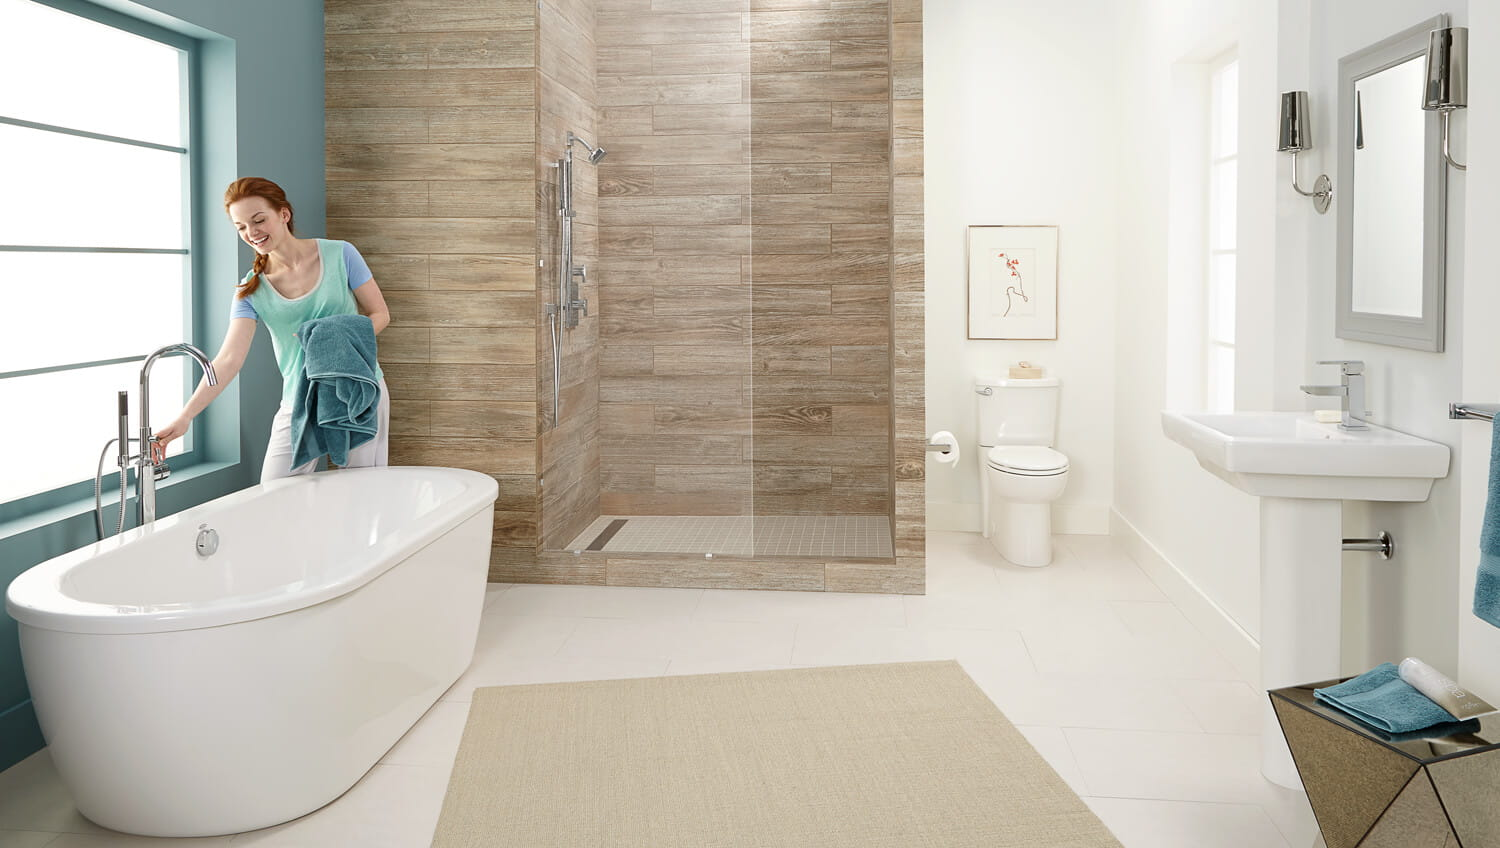 Cadet Suite by American Standard